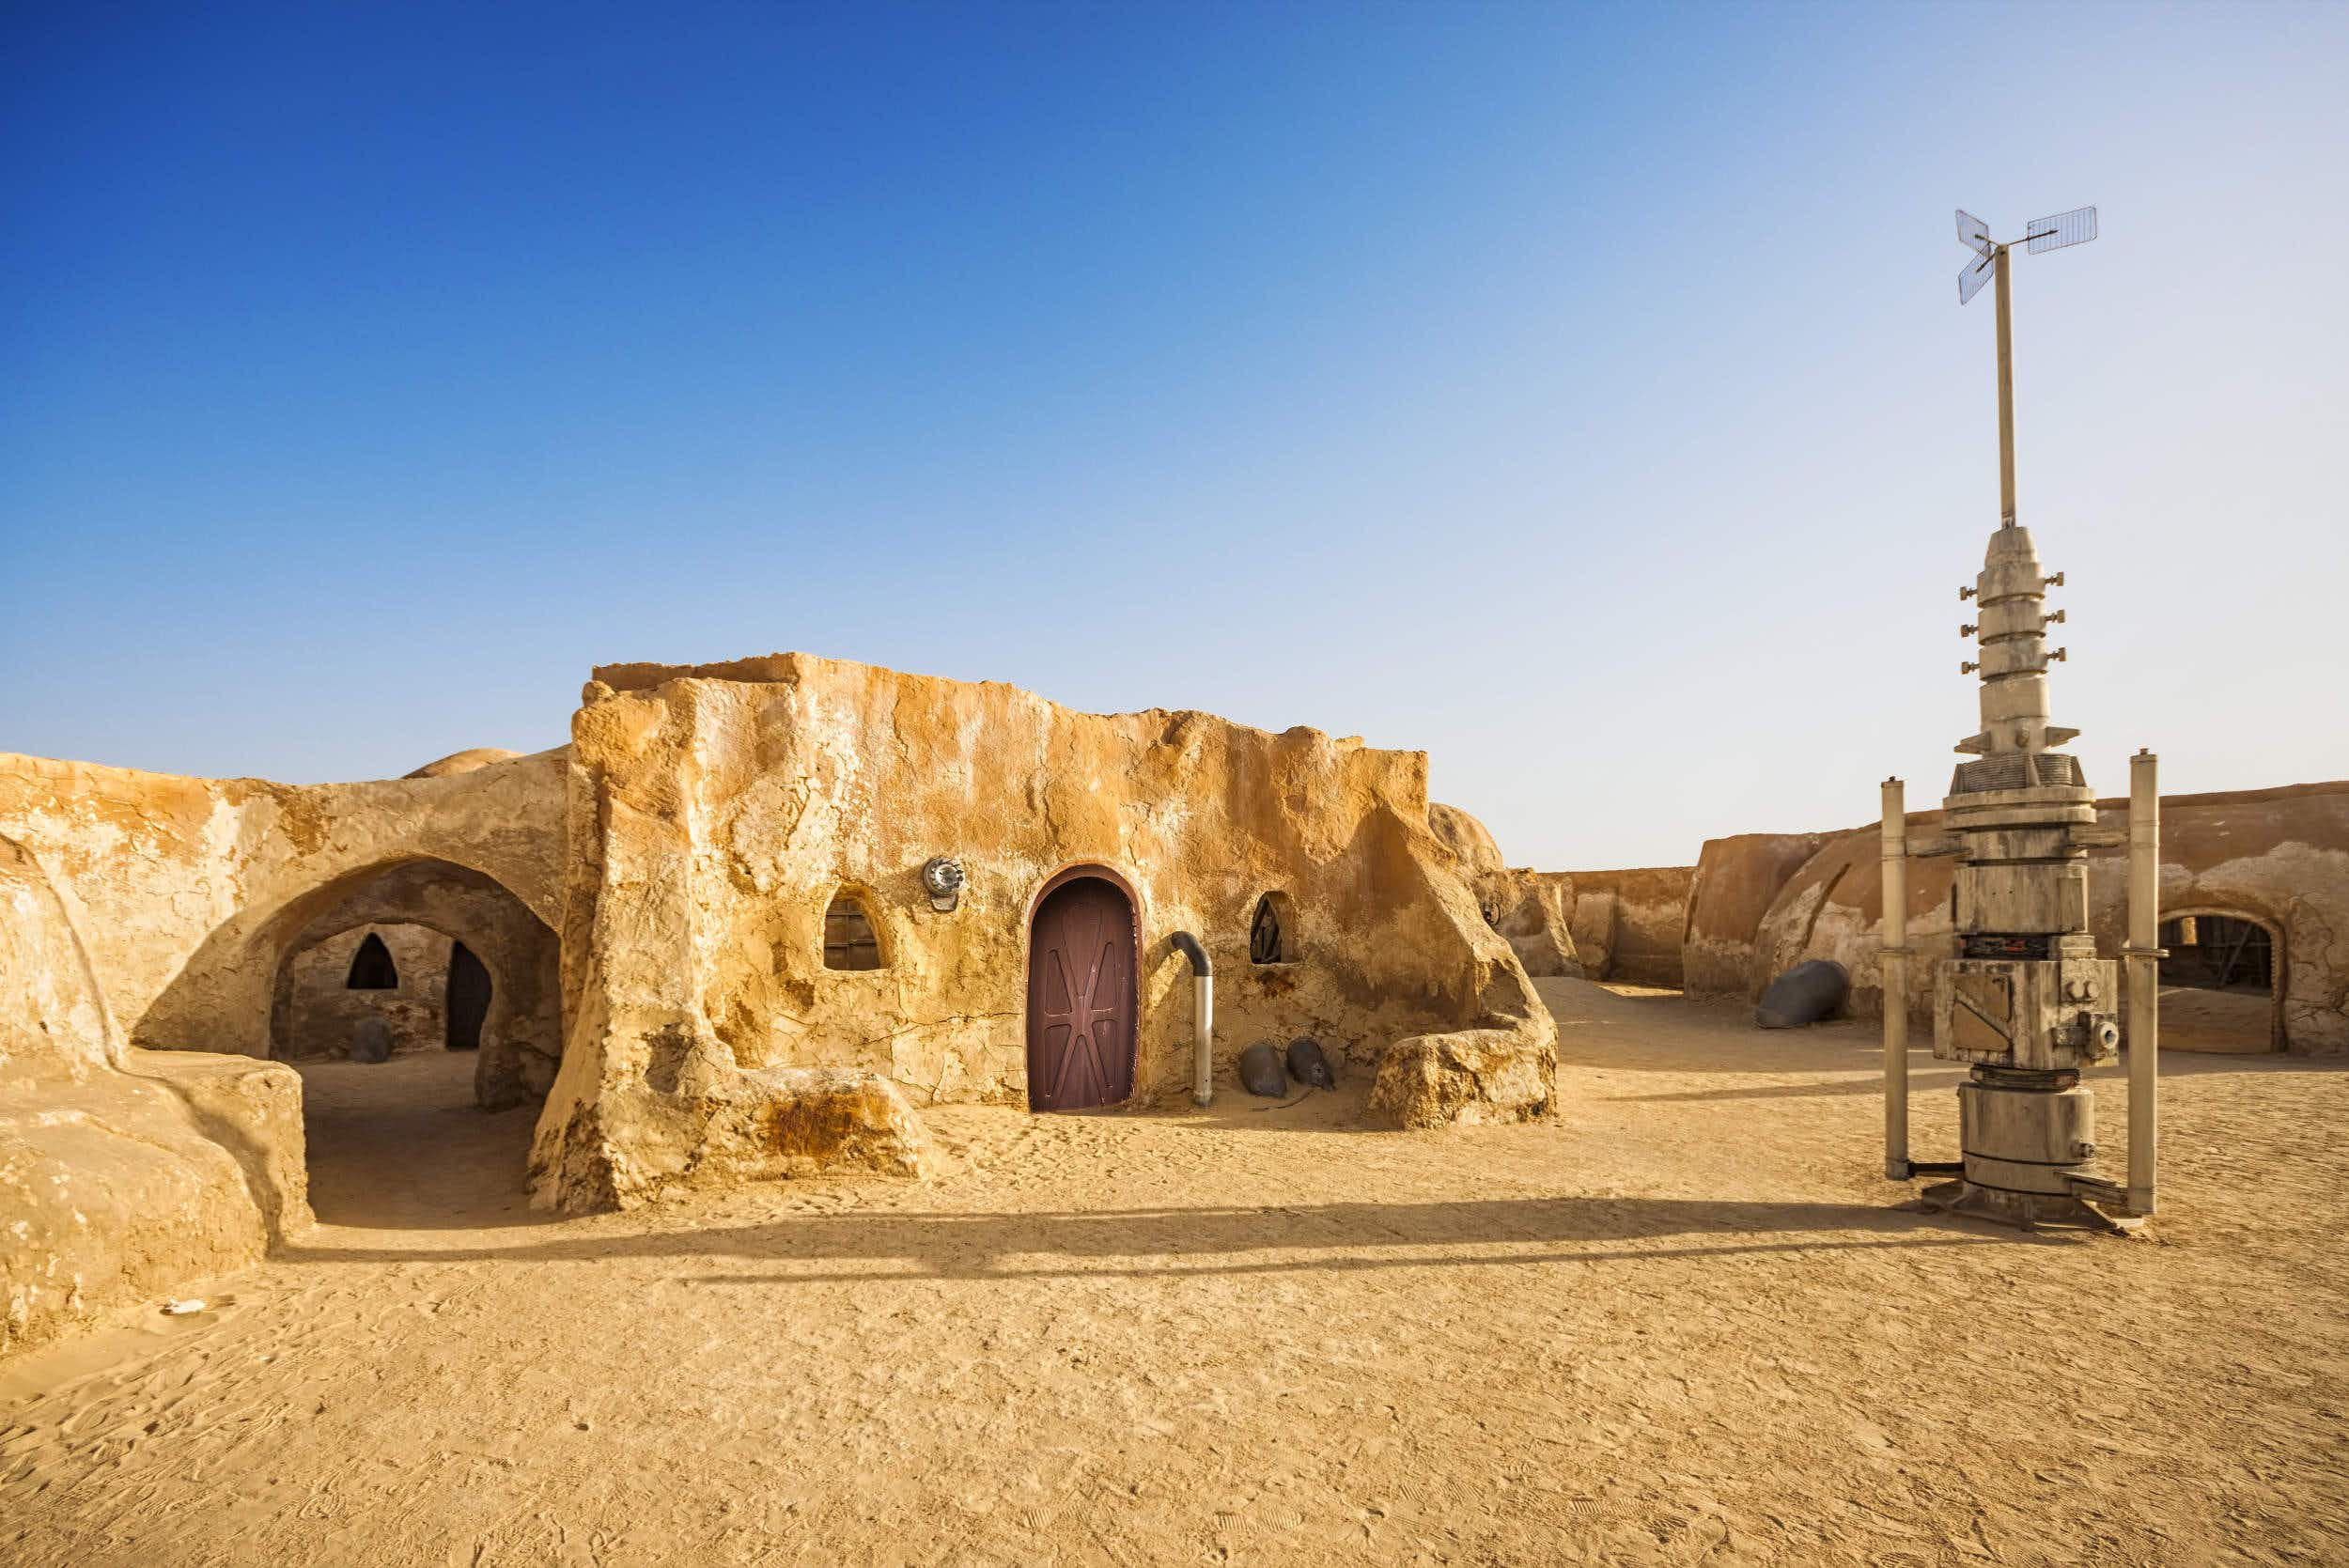 Dance all night at a music festival on a former Star Wars set in the Tunisian desert